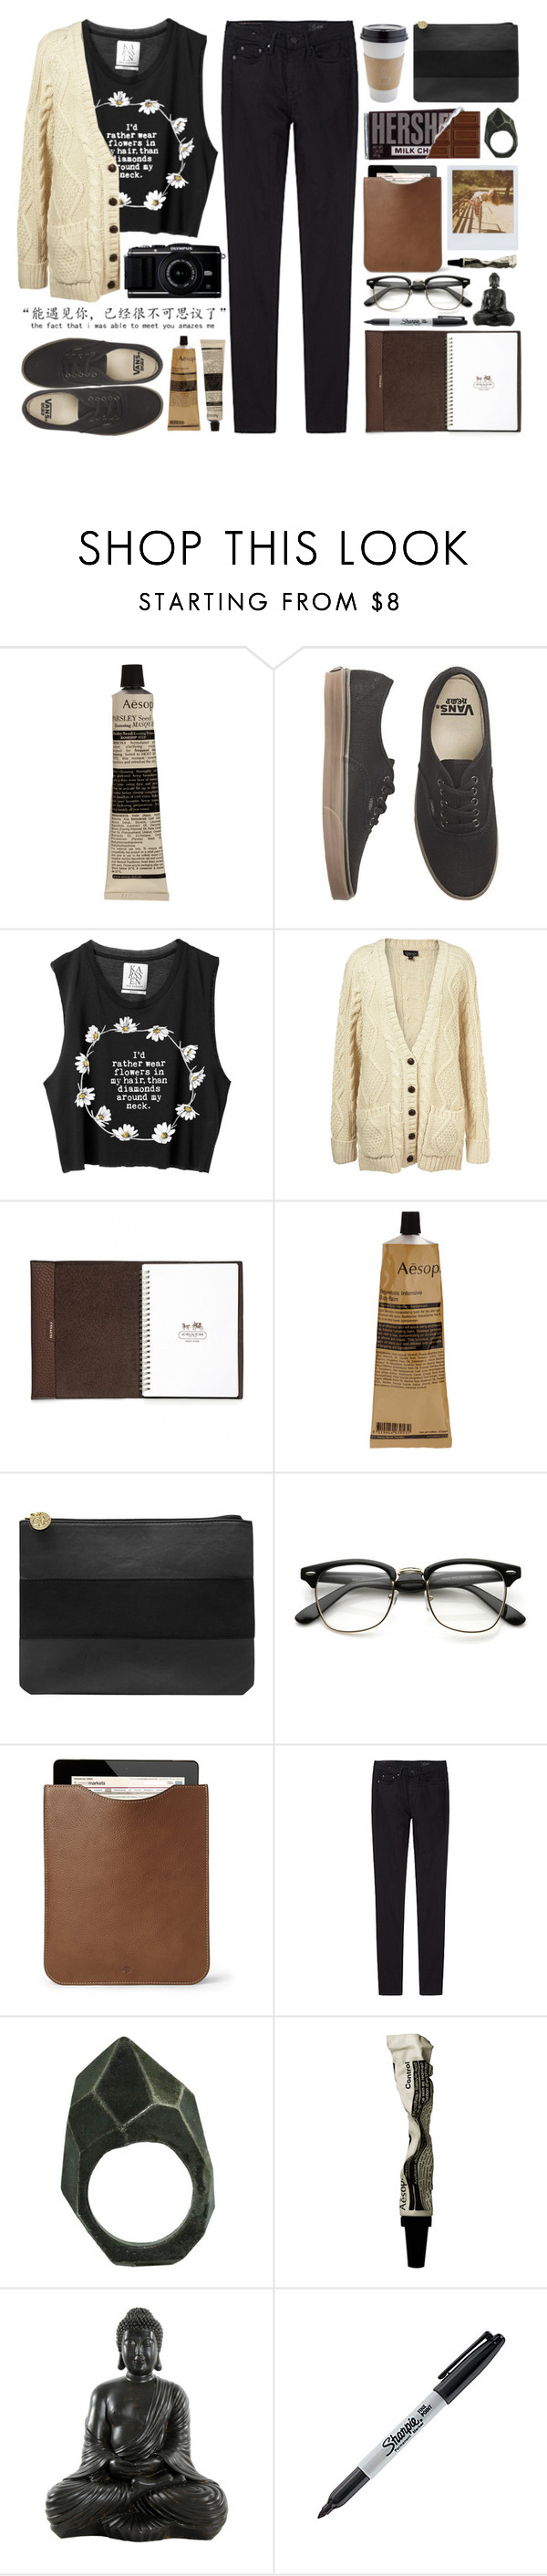 """Ella"" by justonegirlwithdreams ❤ liked on Polyvore featuring mode, Aesop, Vans, Coach, Band of Outsiders, Dorothy Perkins, Mulberry, THEM ATELIER, Lady Grey en Sharpie"